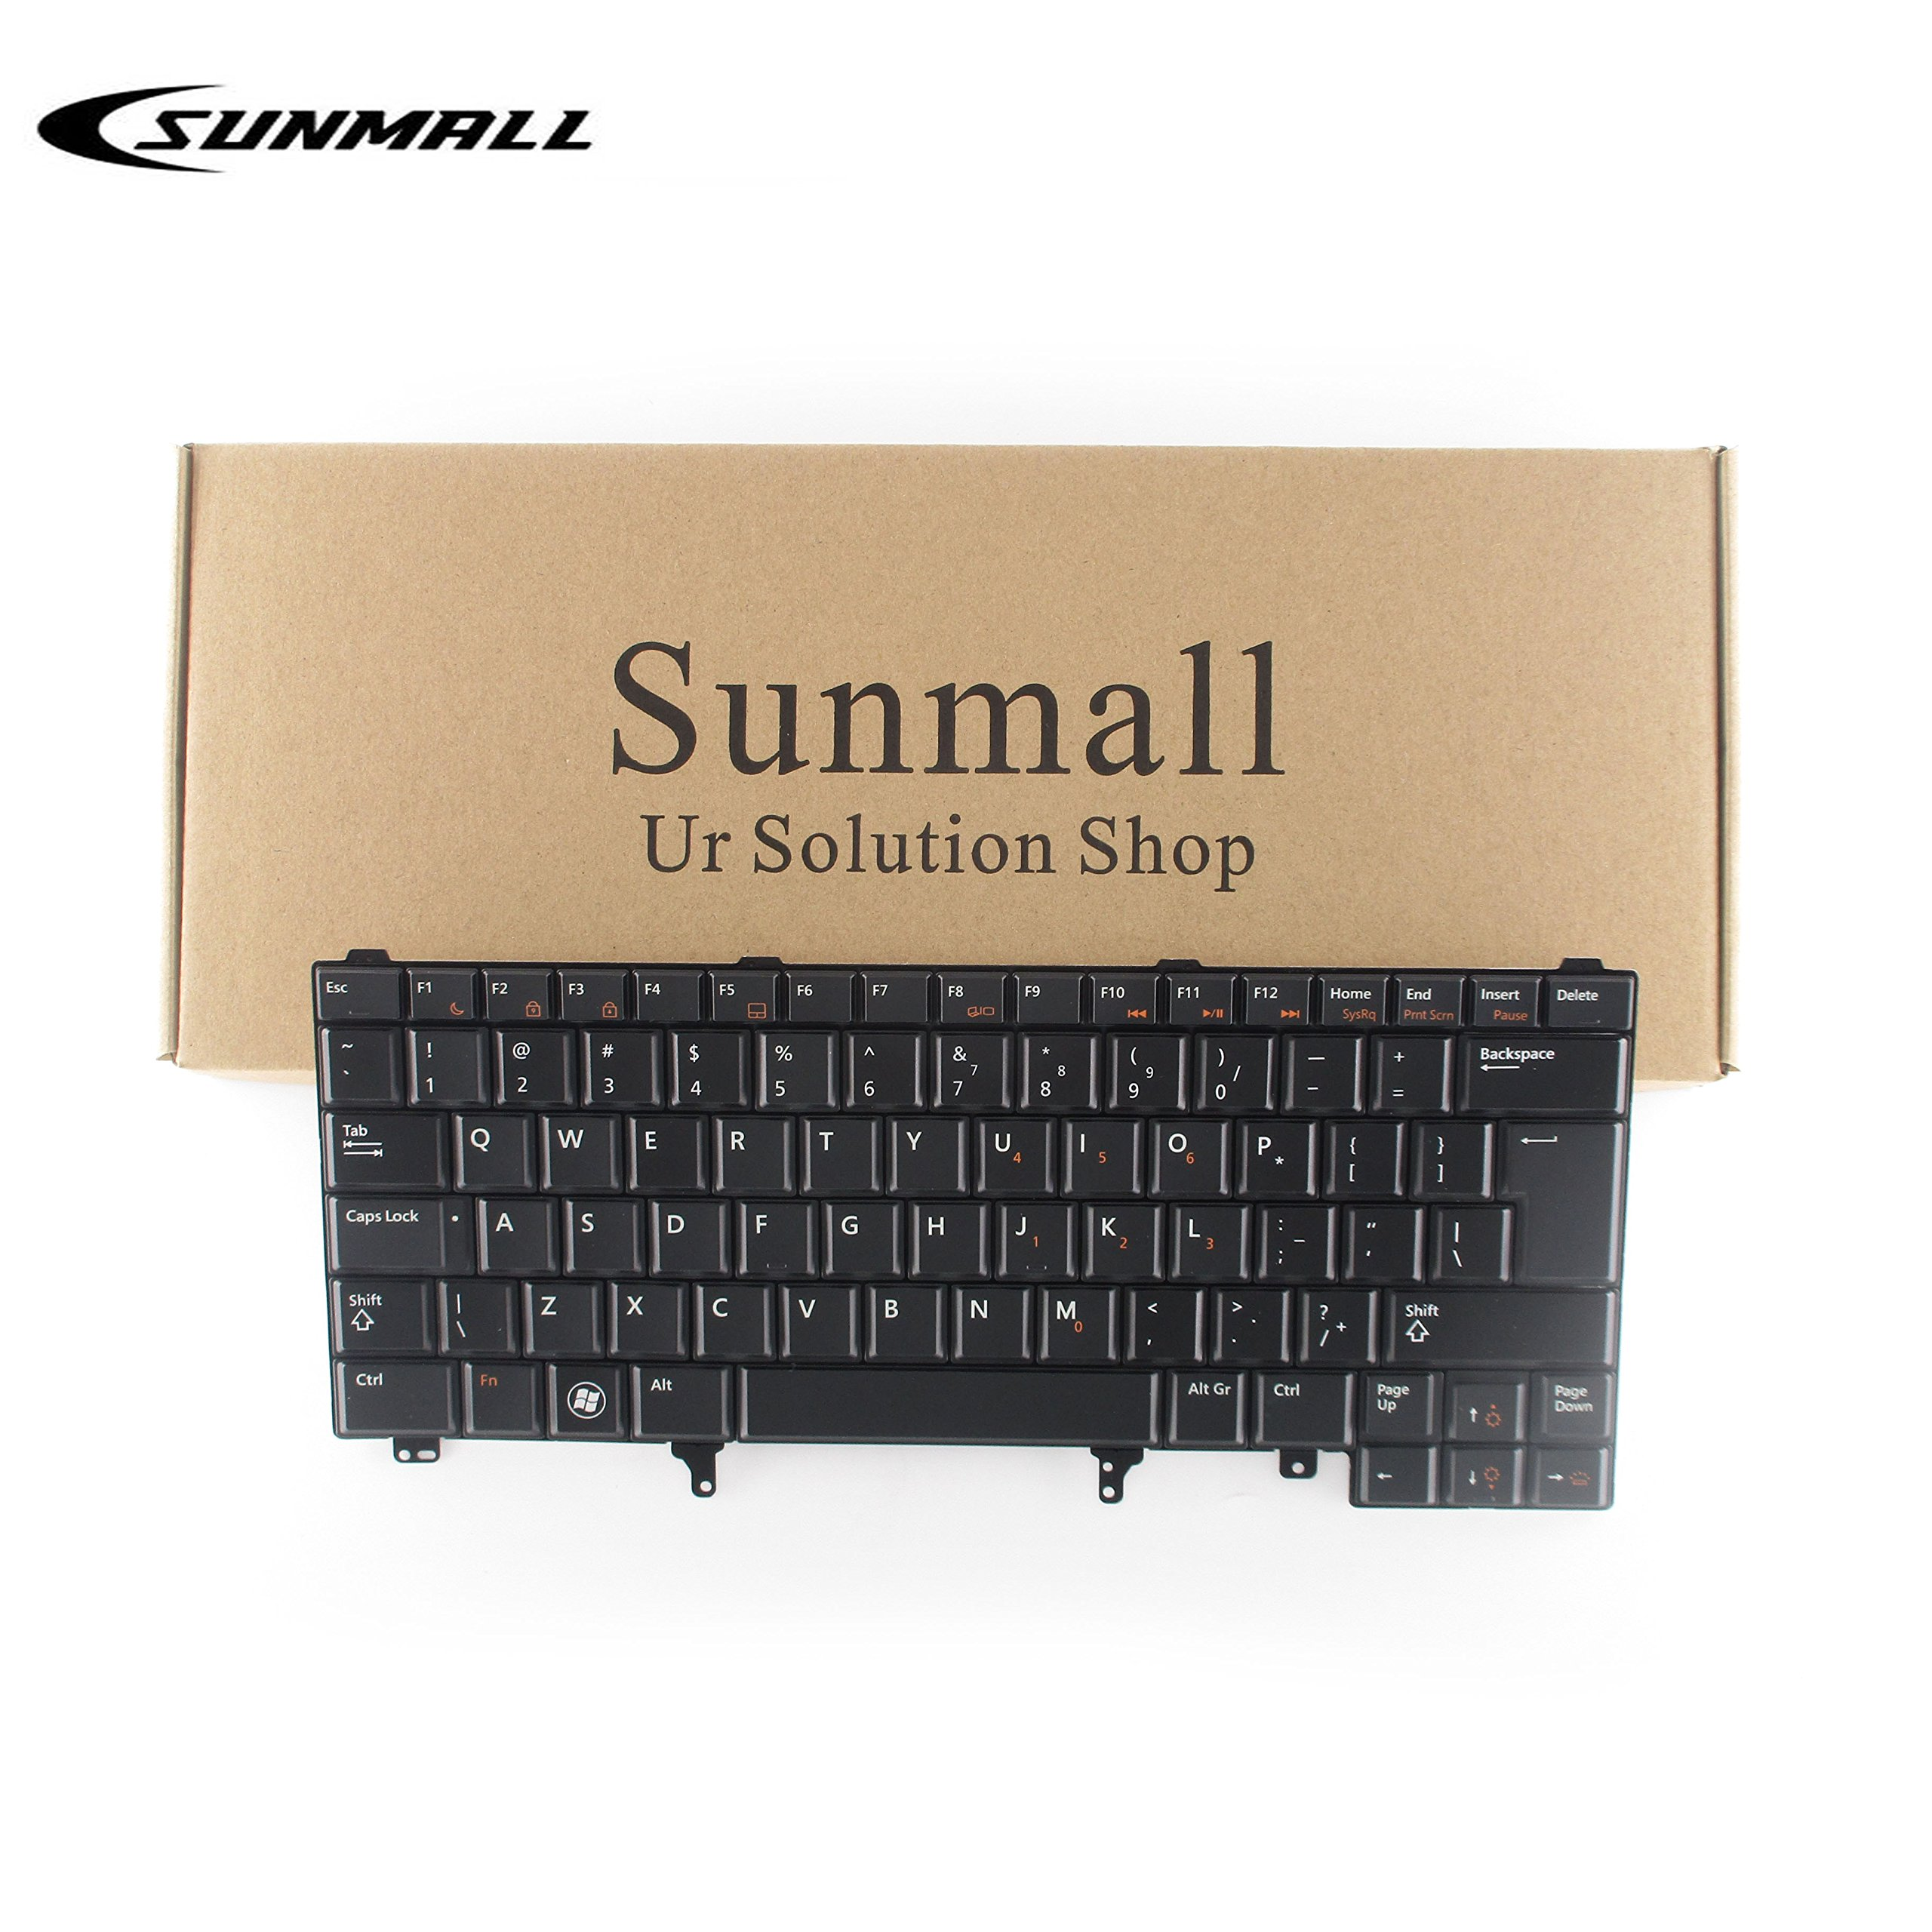 SUNMALL Replacement Keyboard with Backlit and Big Enter Key, Compatible with Dell Latitude E5420 E5430 E6220 E6320 E6330 E6420 E6430 E6440 Series US Layout (Without Pointer Stick)